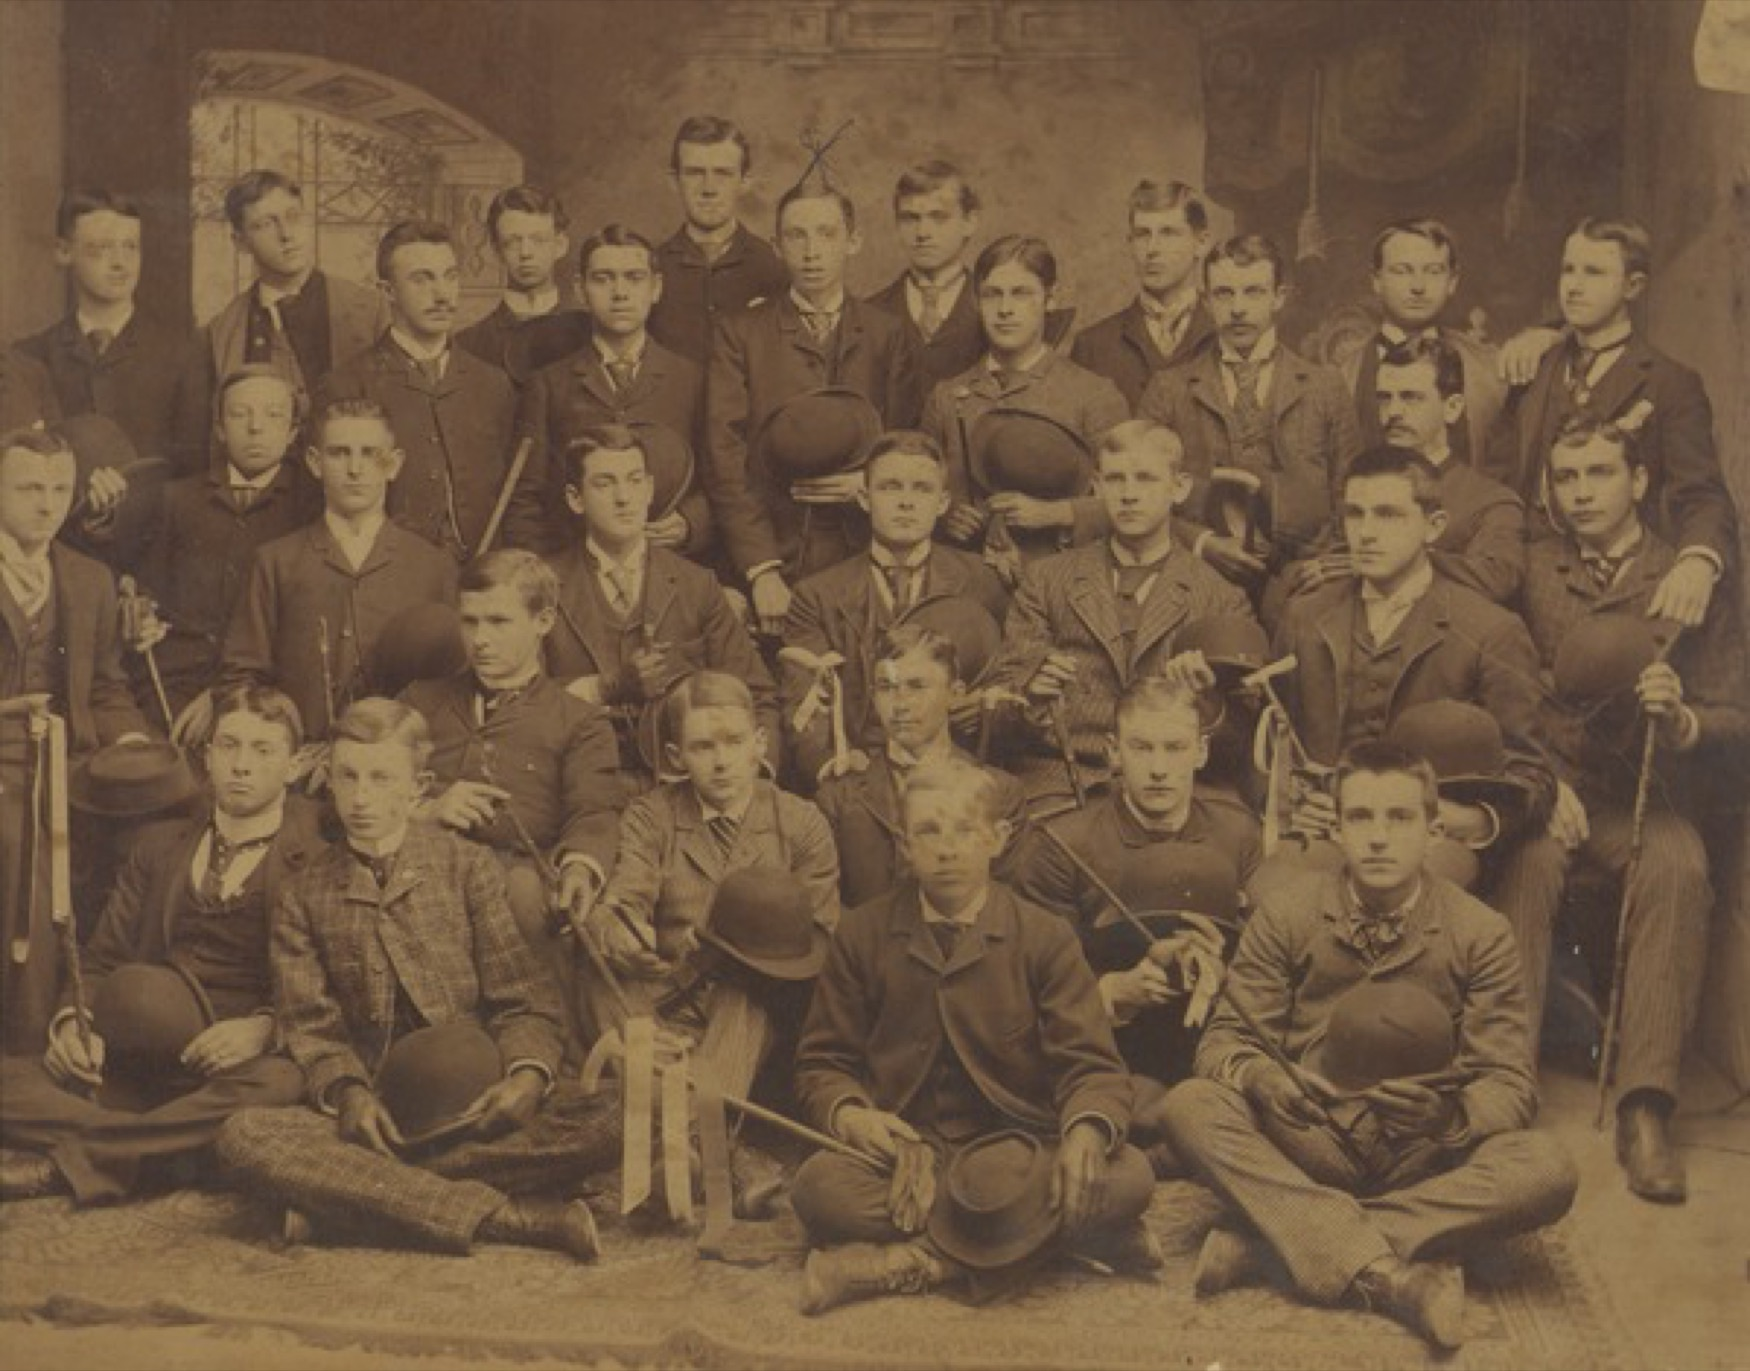 Members of the class of 1890 pose with canes, gloves and bowler hats in front of a backdrop. Fred A. Smith is pictured with an x above his head., ca. 1890